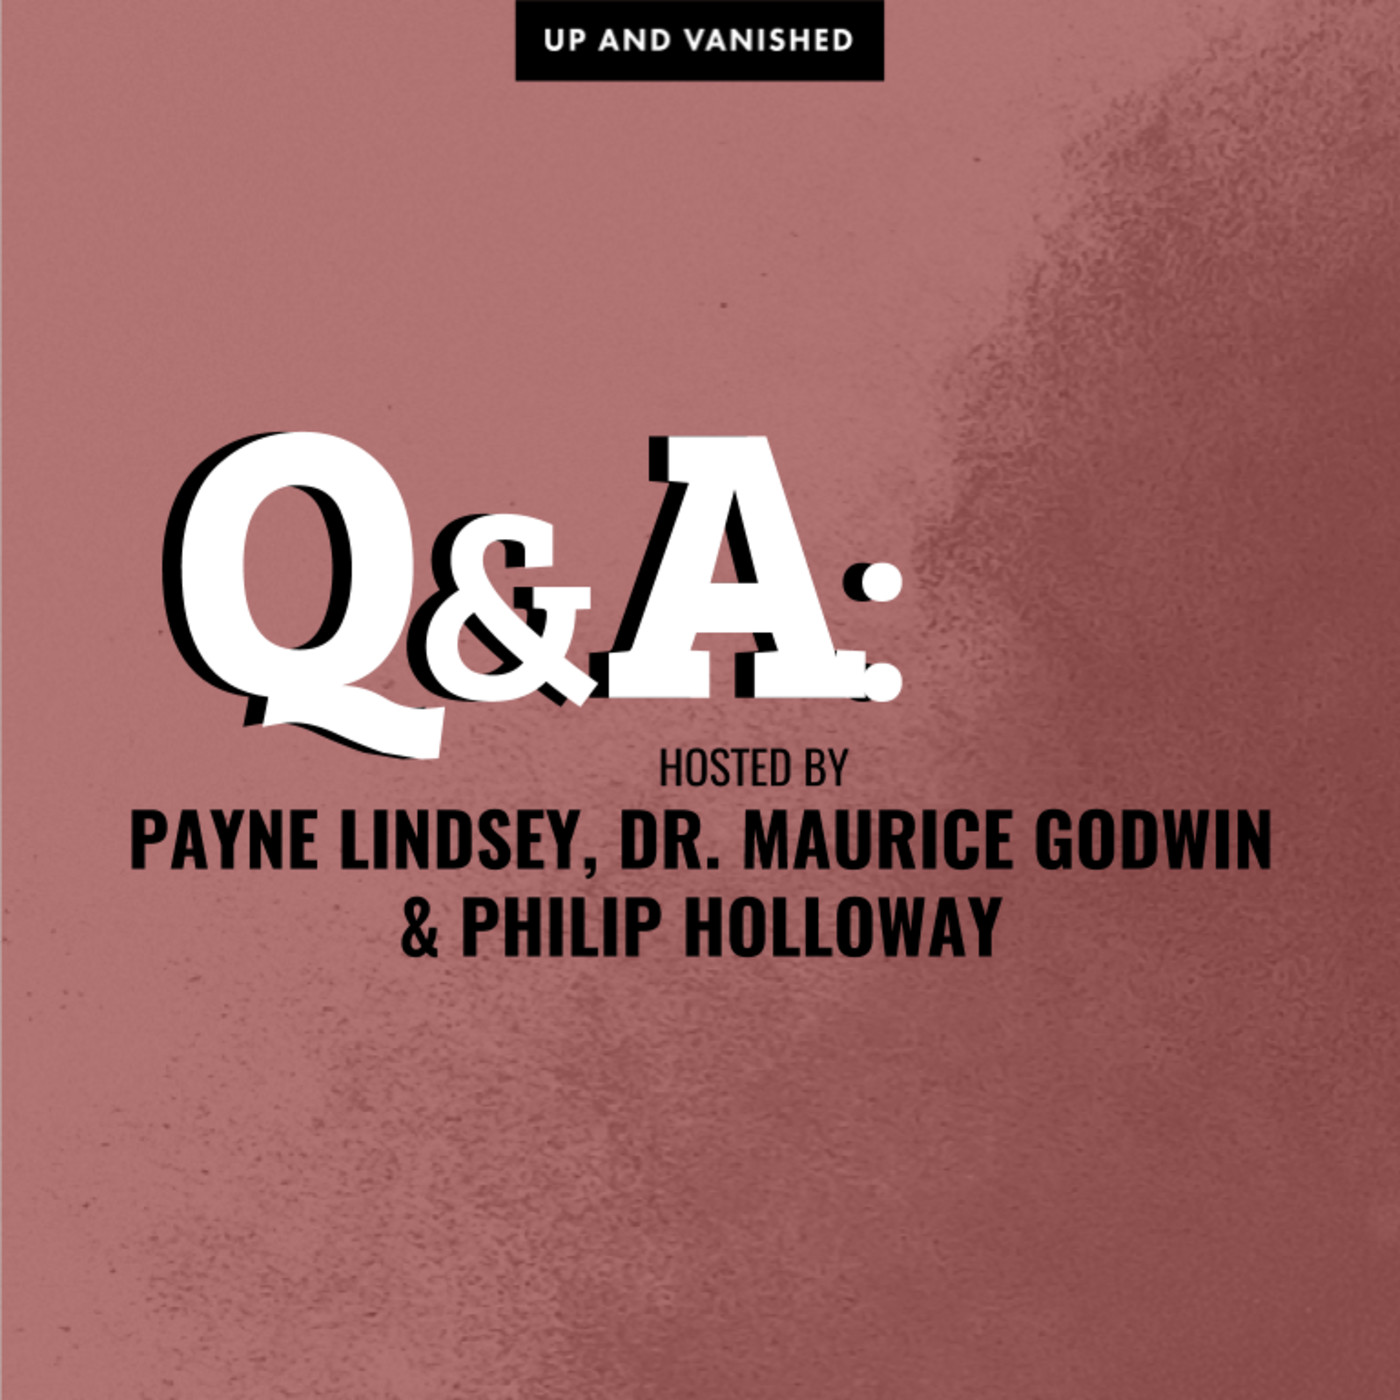 Q&A with Payne Lindsey, Dr. Maurice Godwin, & Philip Holloway 07.20.17